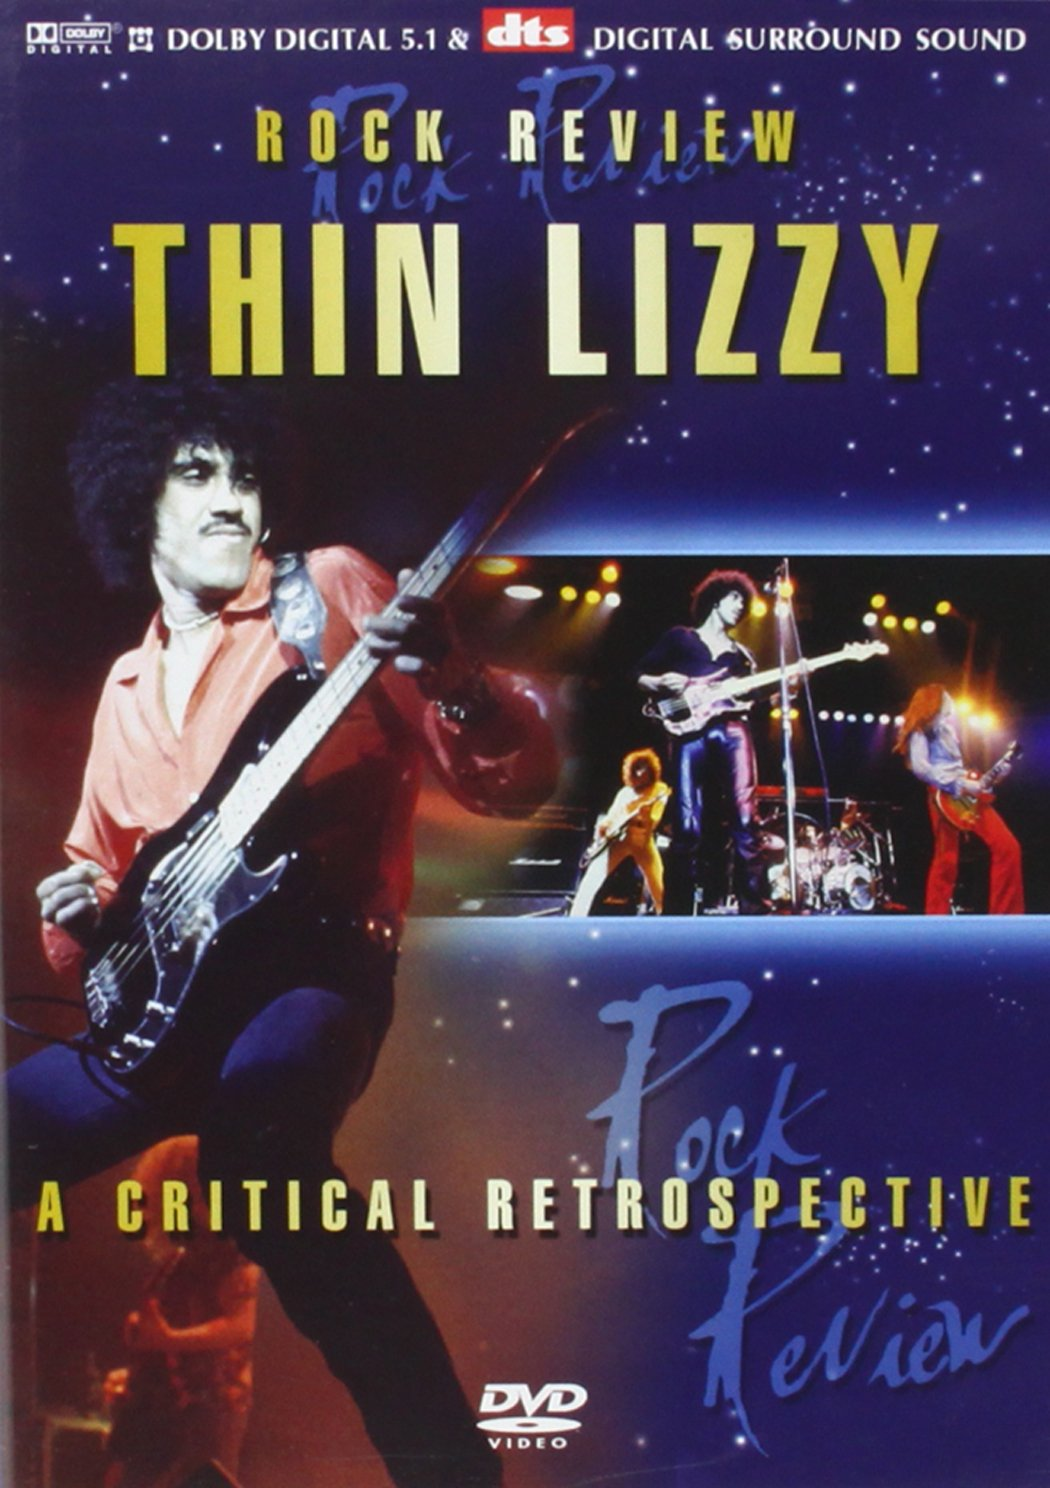 Rock Review: Thin Lizzy - A Critical Retrospective